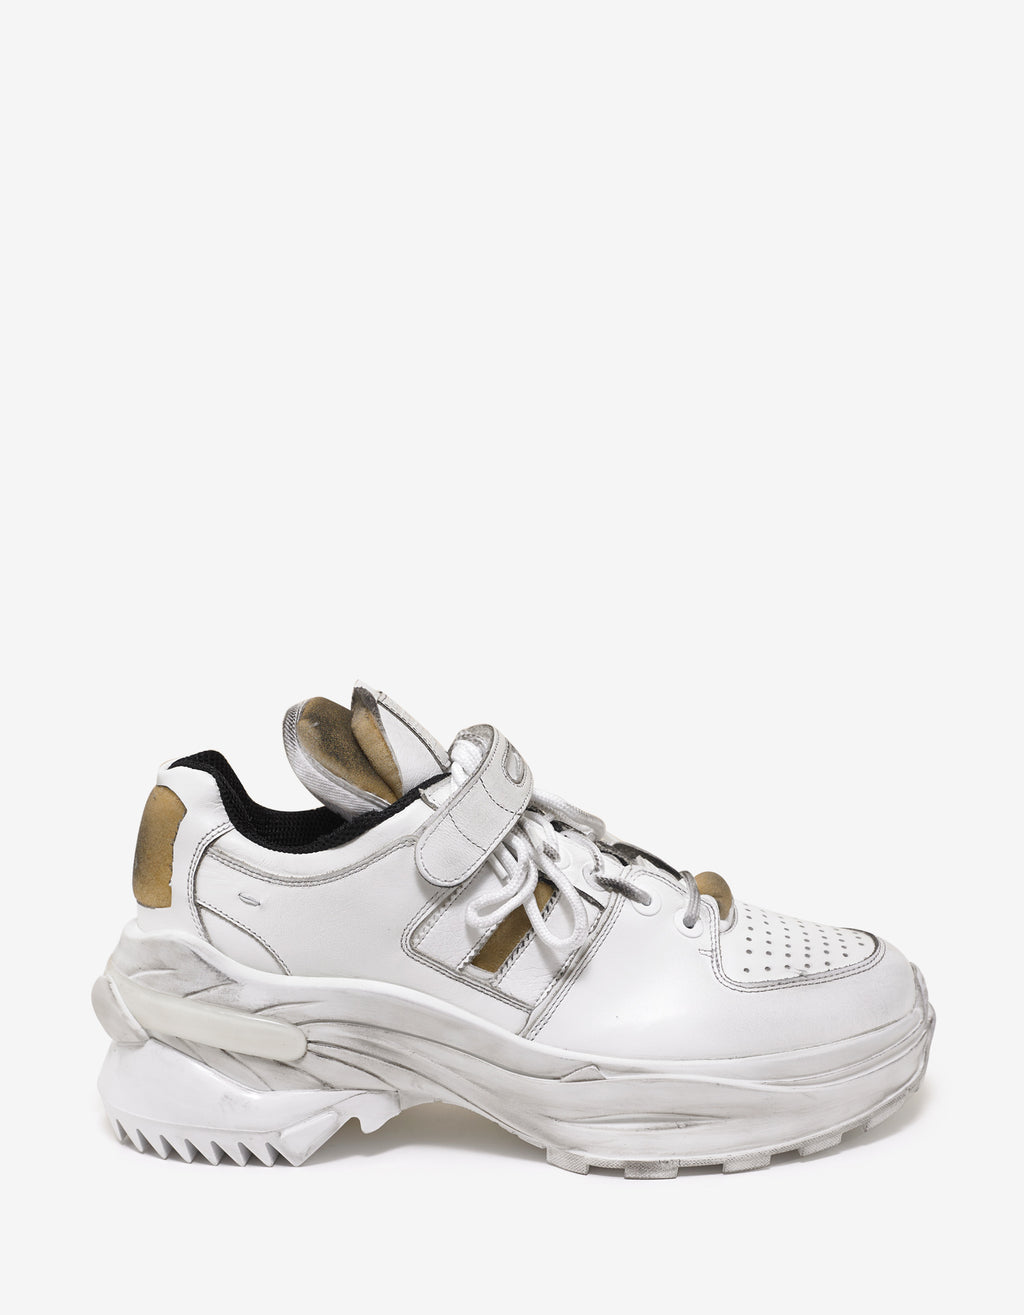 White Artisanal Low Top Trainers